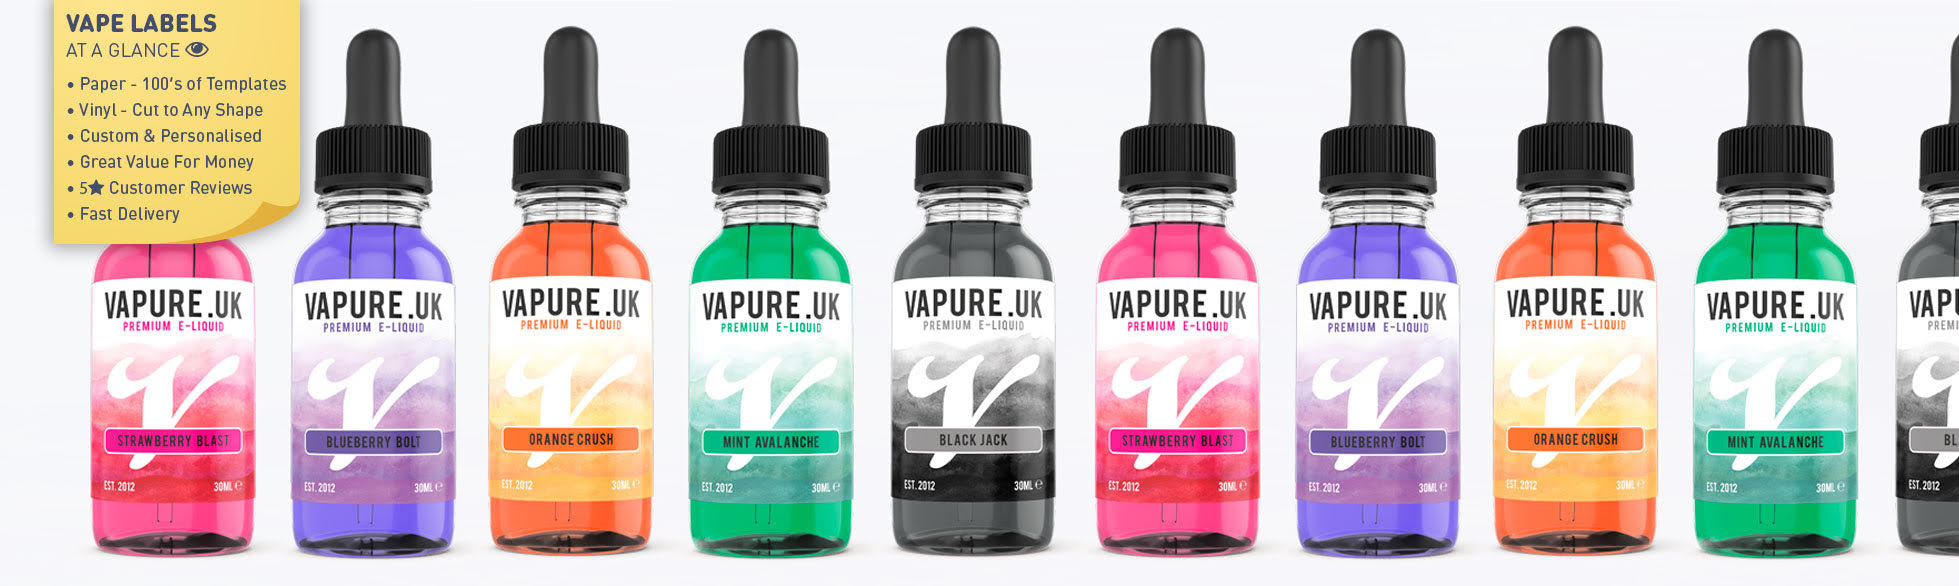 Vape E-Liquid Refill Labels